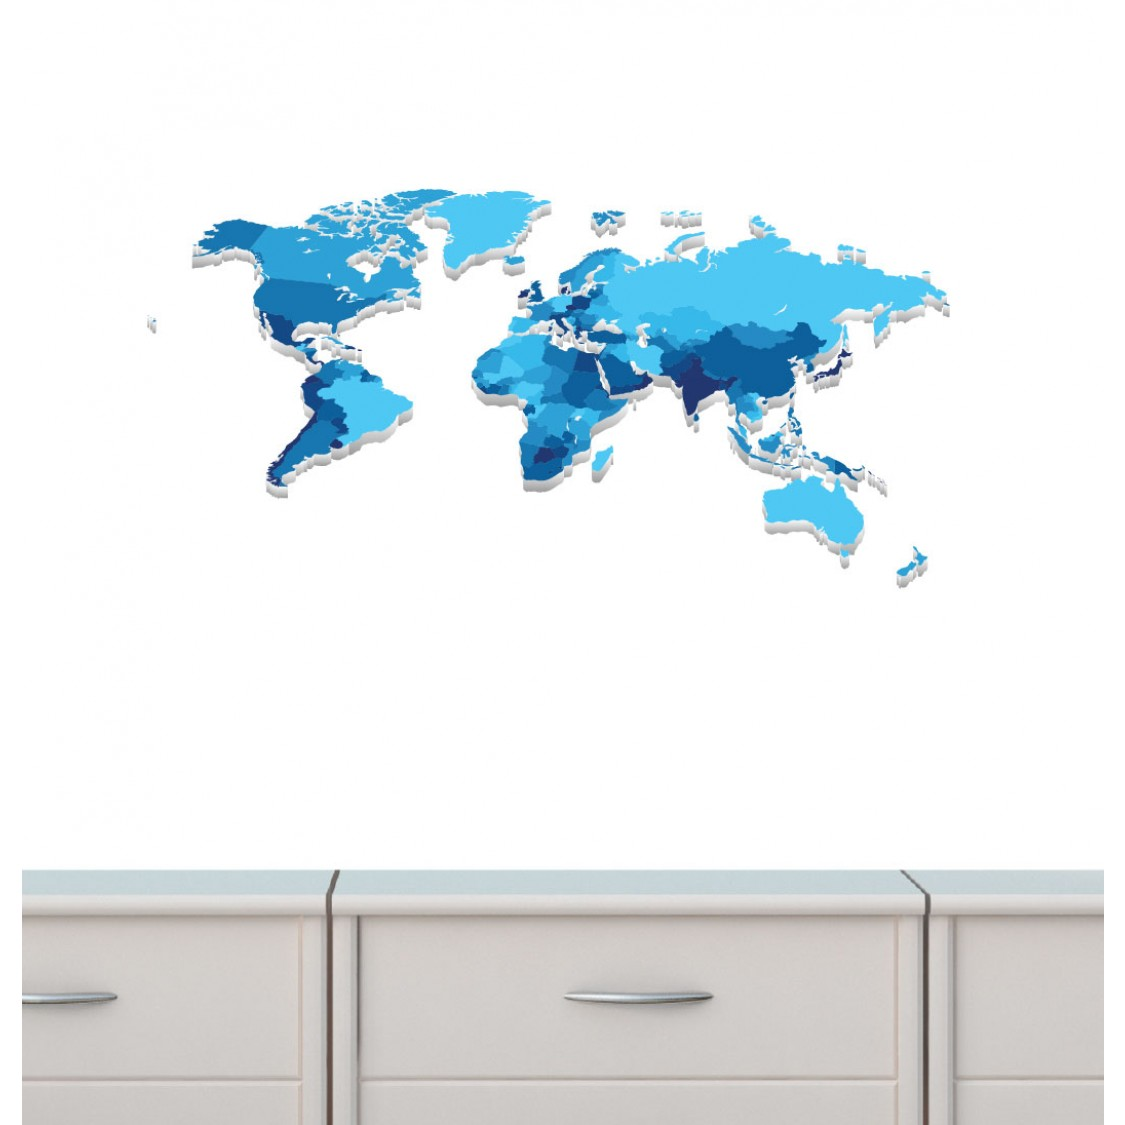 World Map Wall Decals For Boys Bedrooms  sc 1 st  Nursery Decals and More : map wall decals - www.pureclipart.com